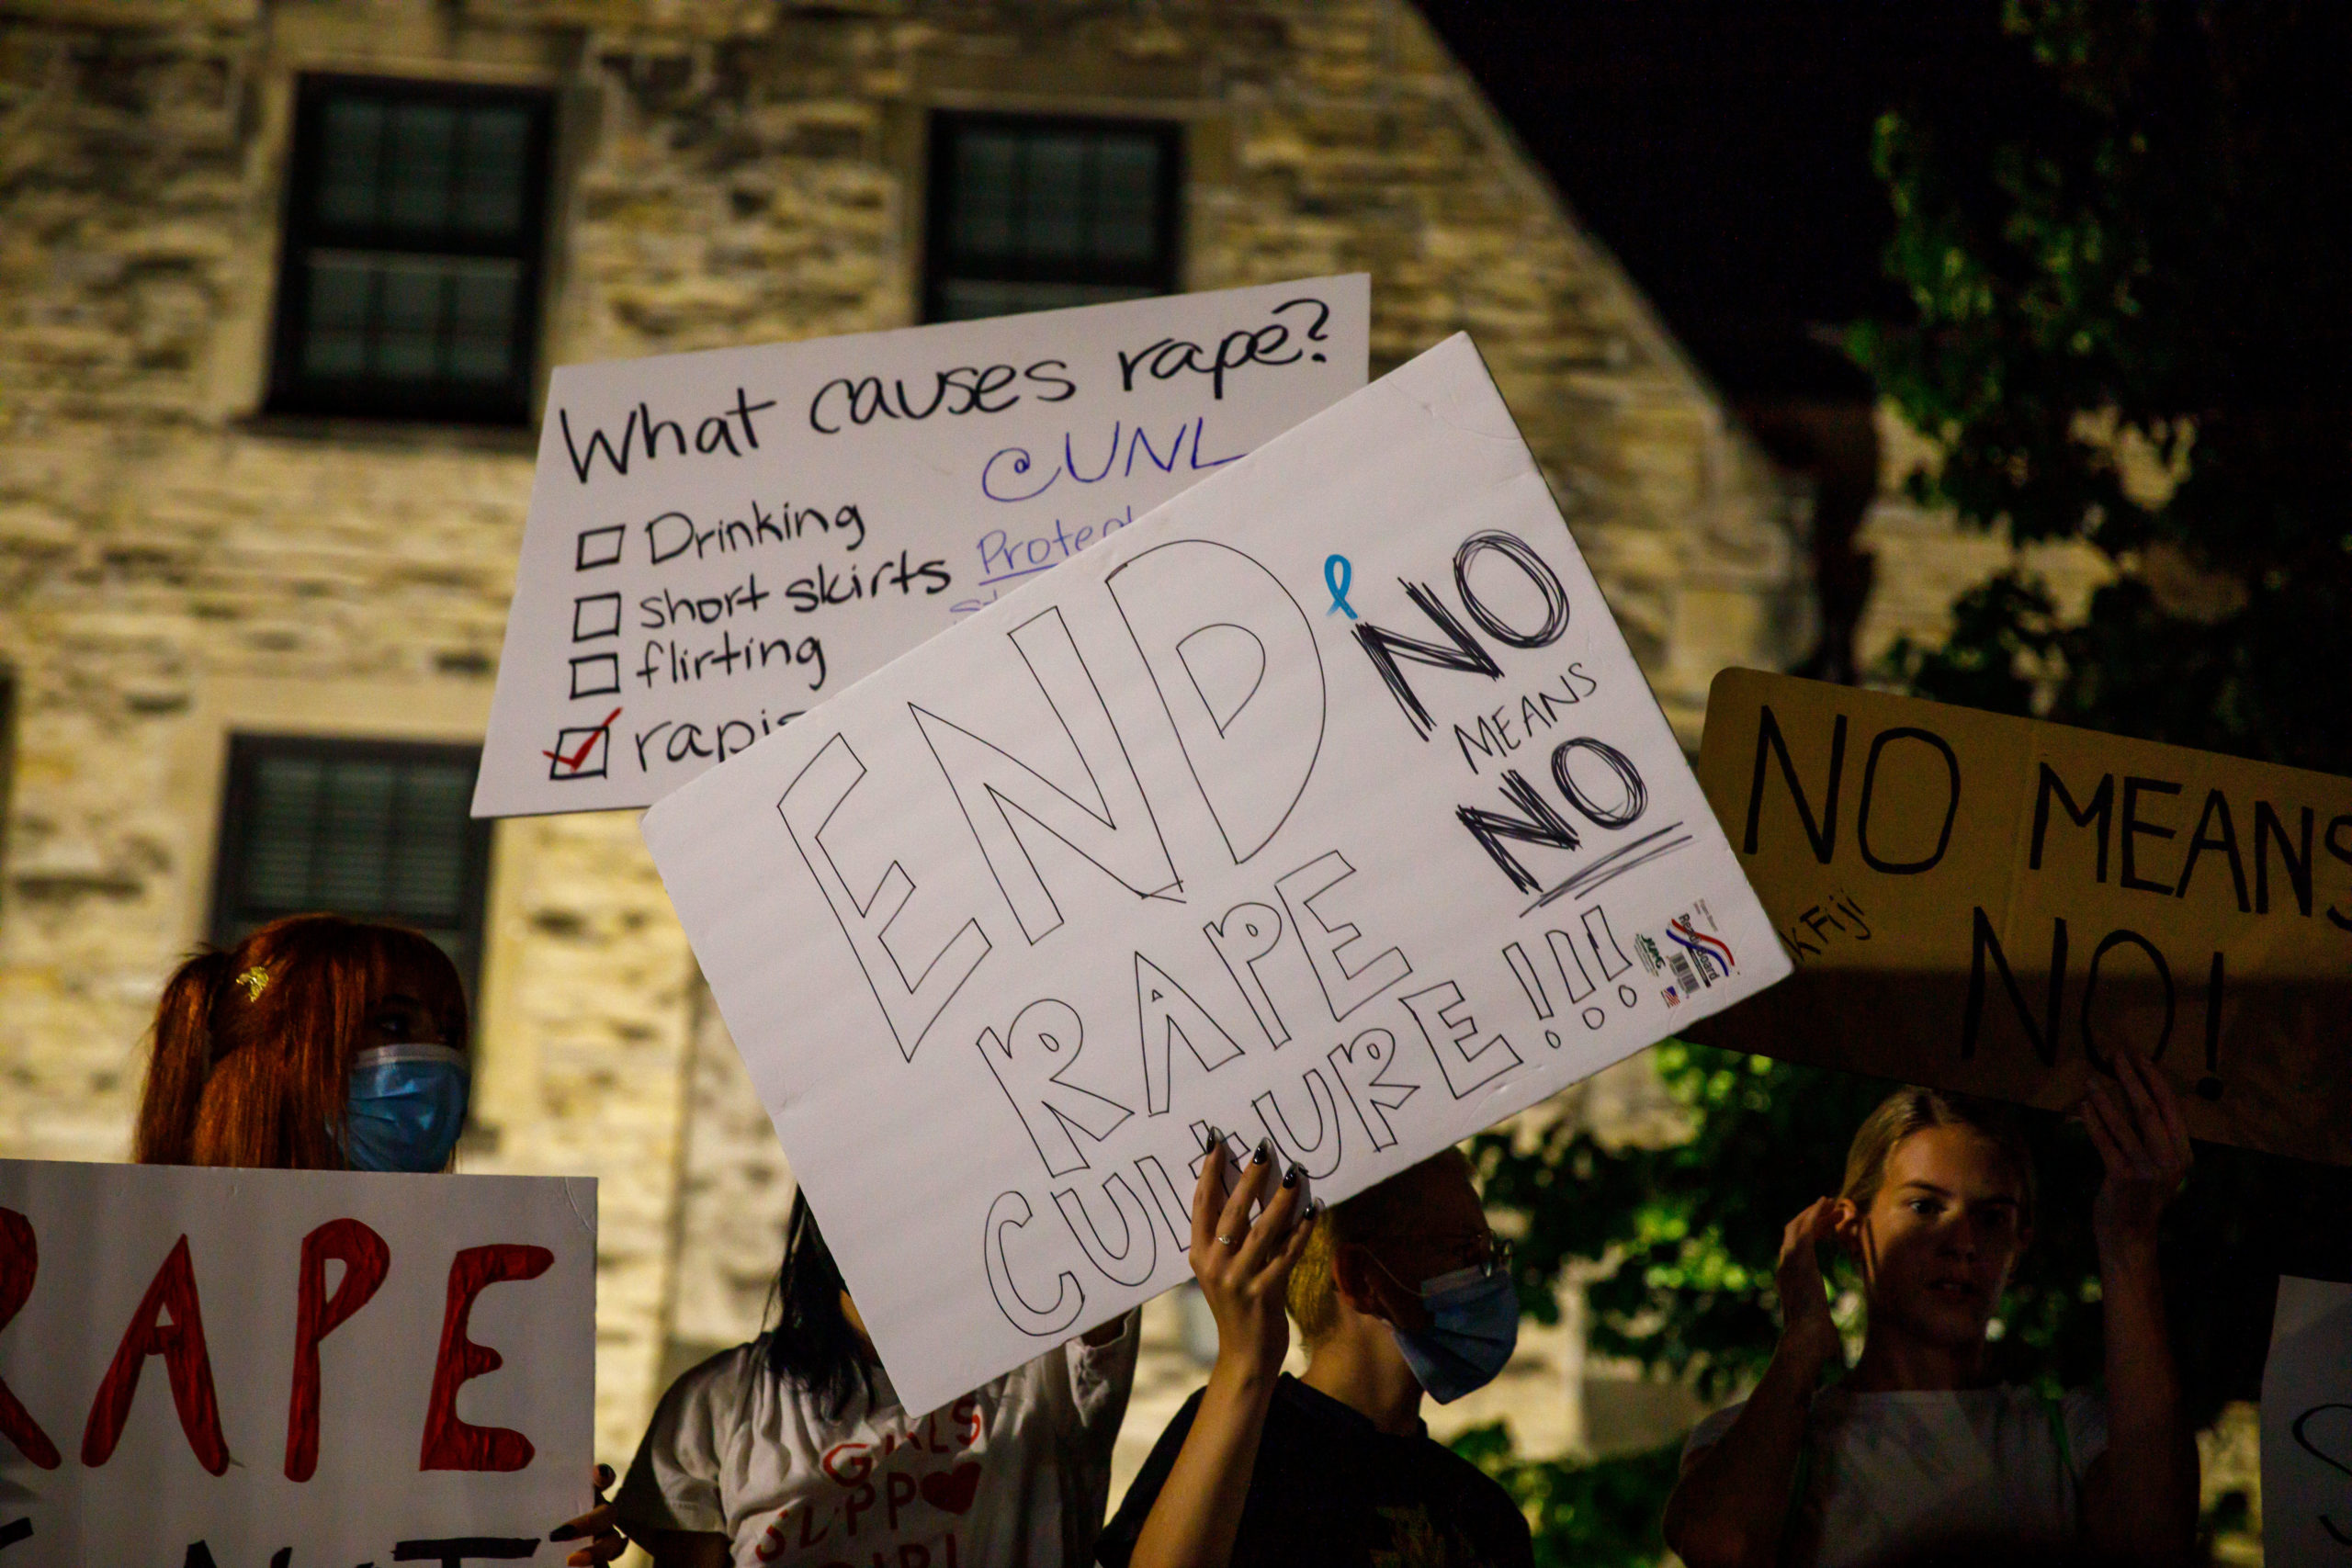 416A7018 scaled - Students protest outside of UNL fraternity house after reported sexual assault